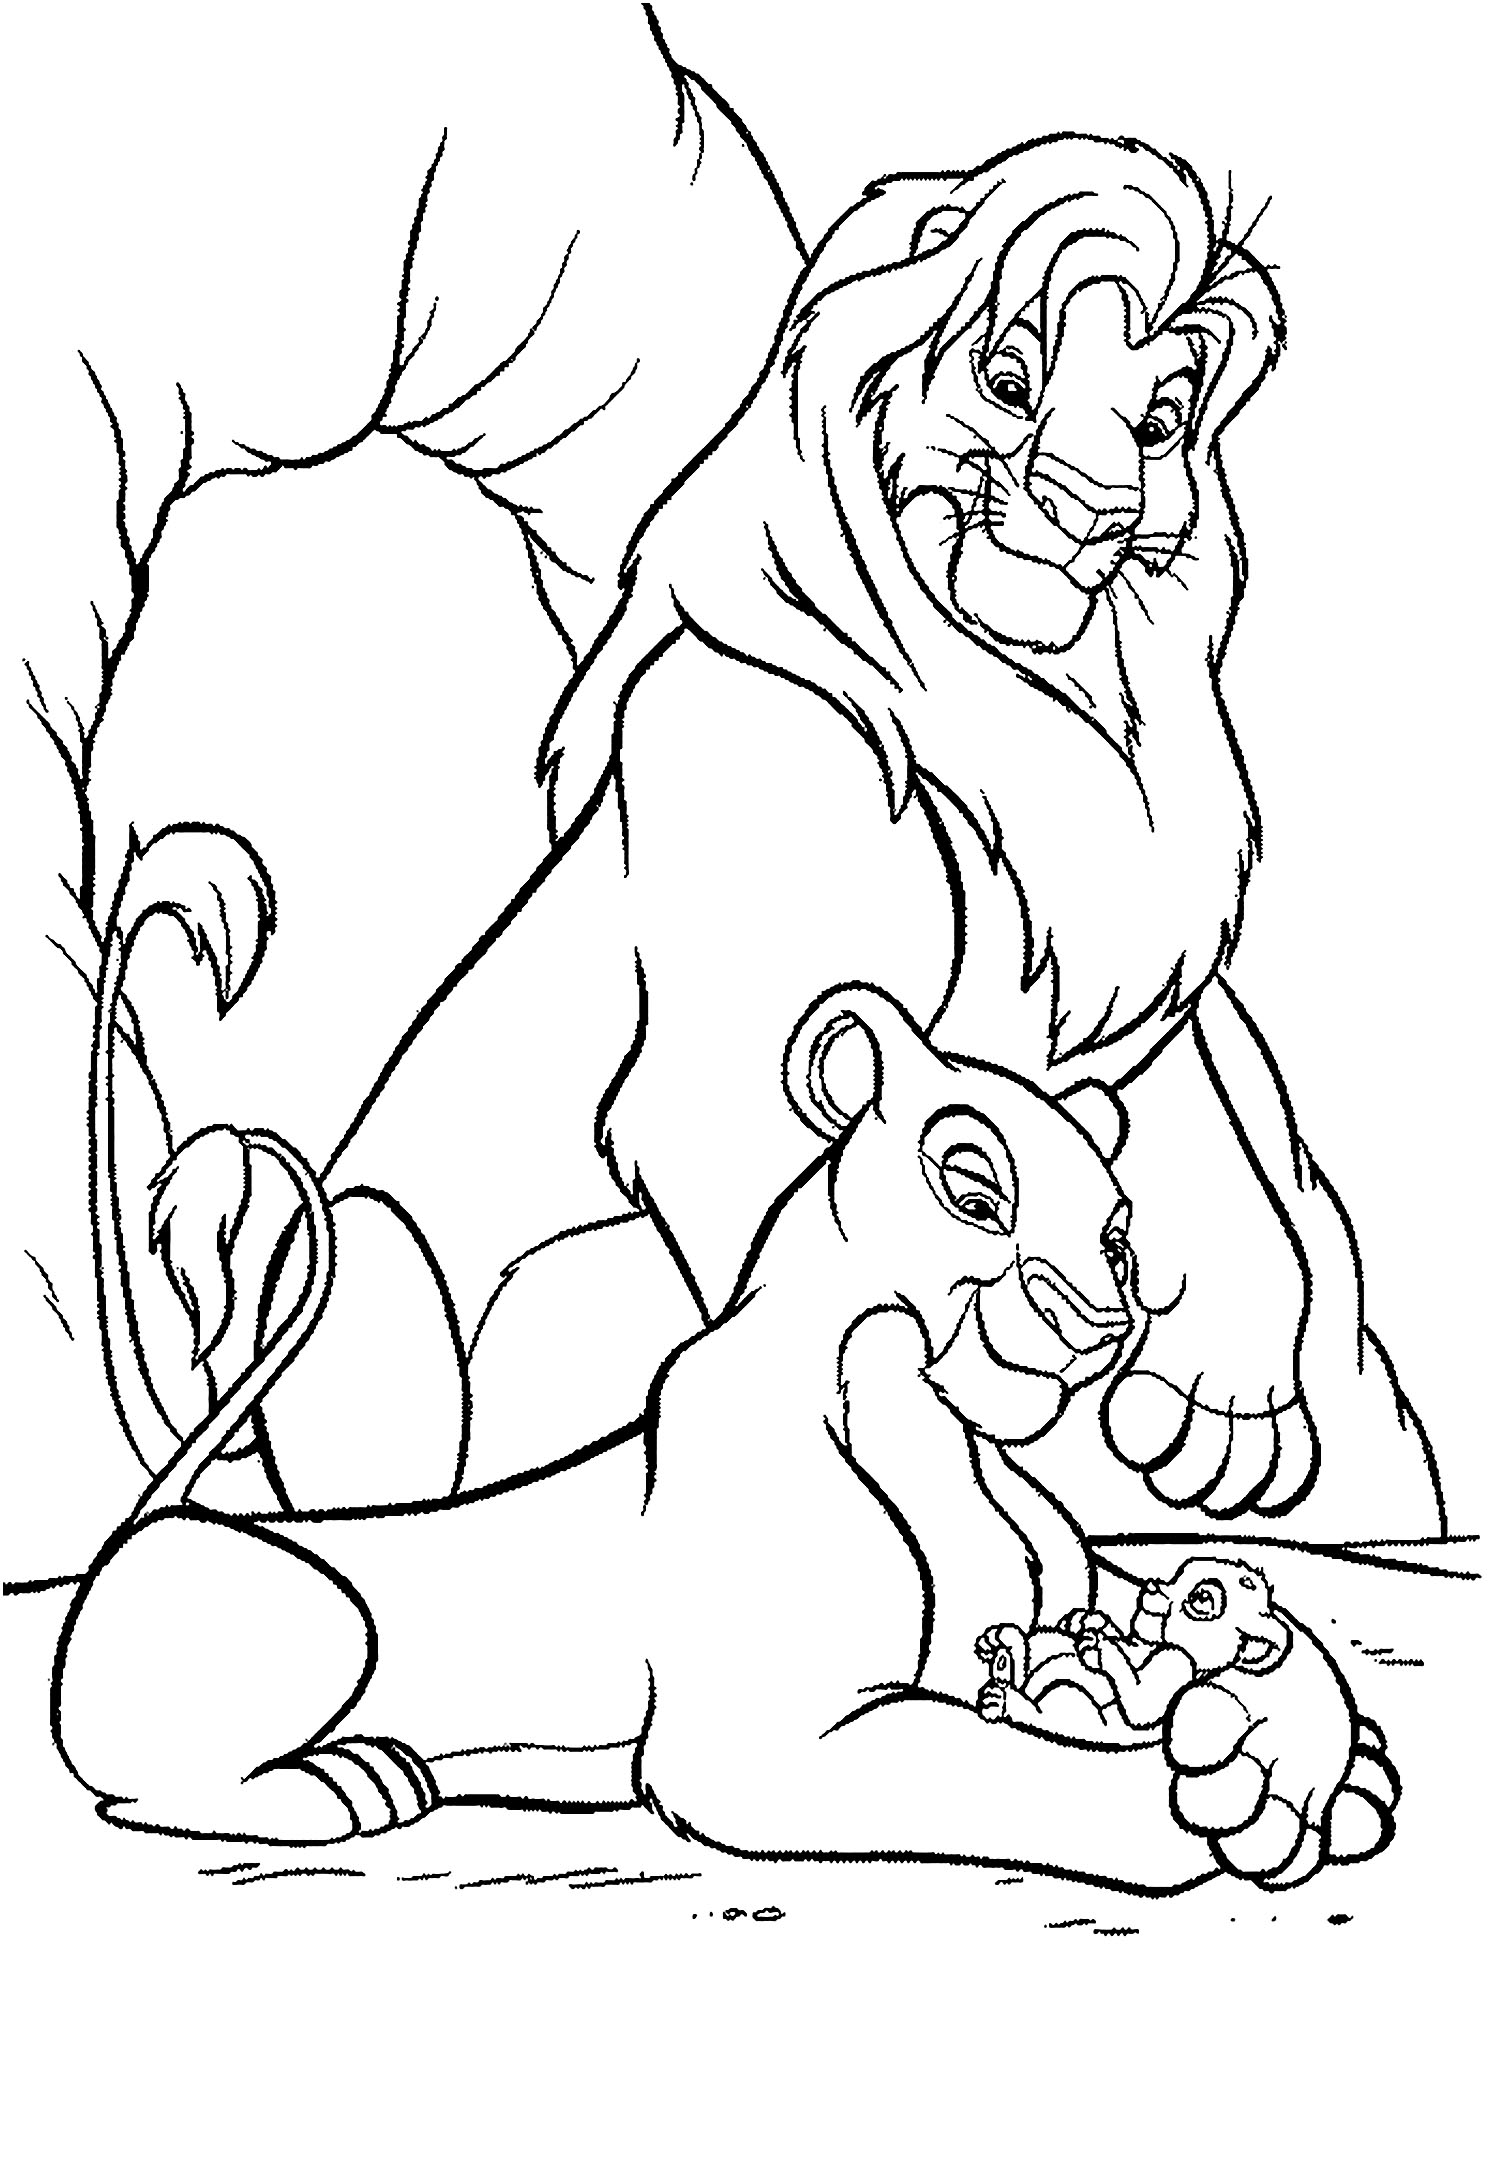 Mufasa, Nala and their son Simba - The Lion King Kids ...